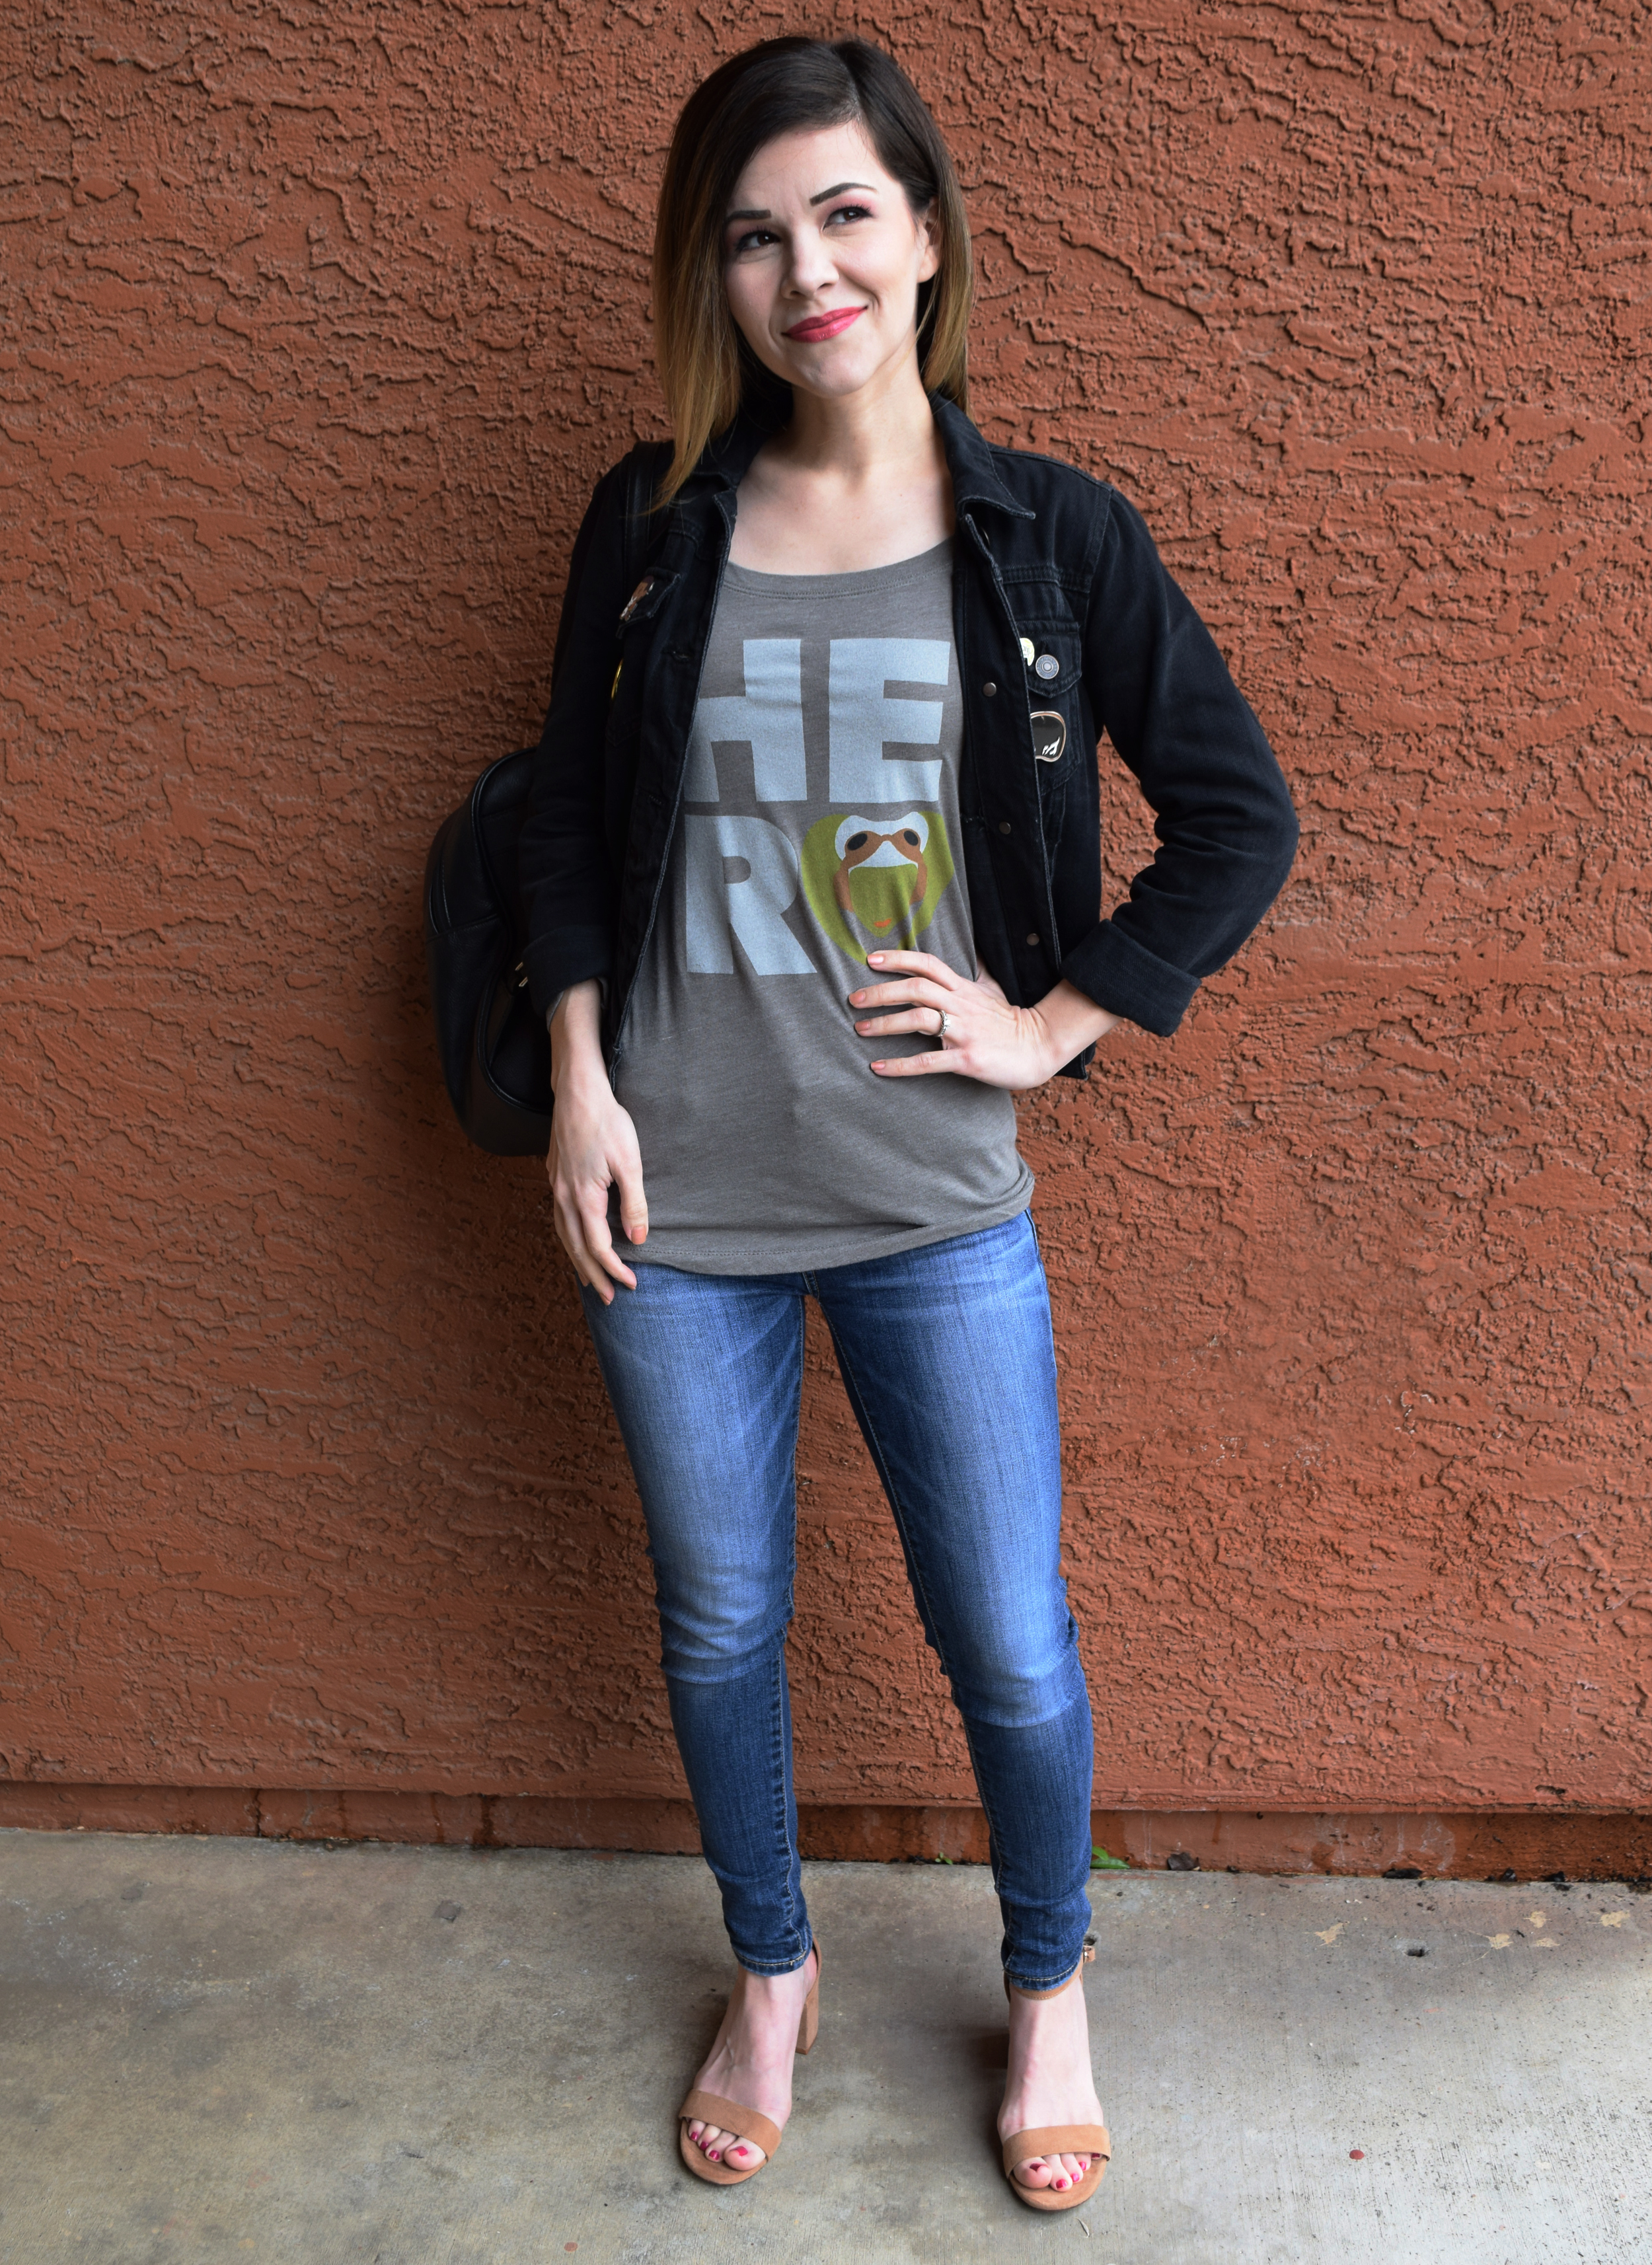 Star Wars OOTD: Rebels Remembered | Anakin and His Angel